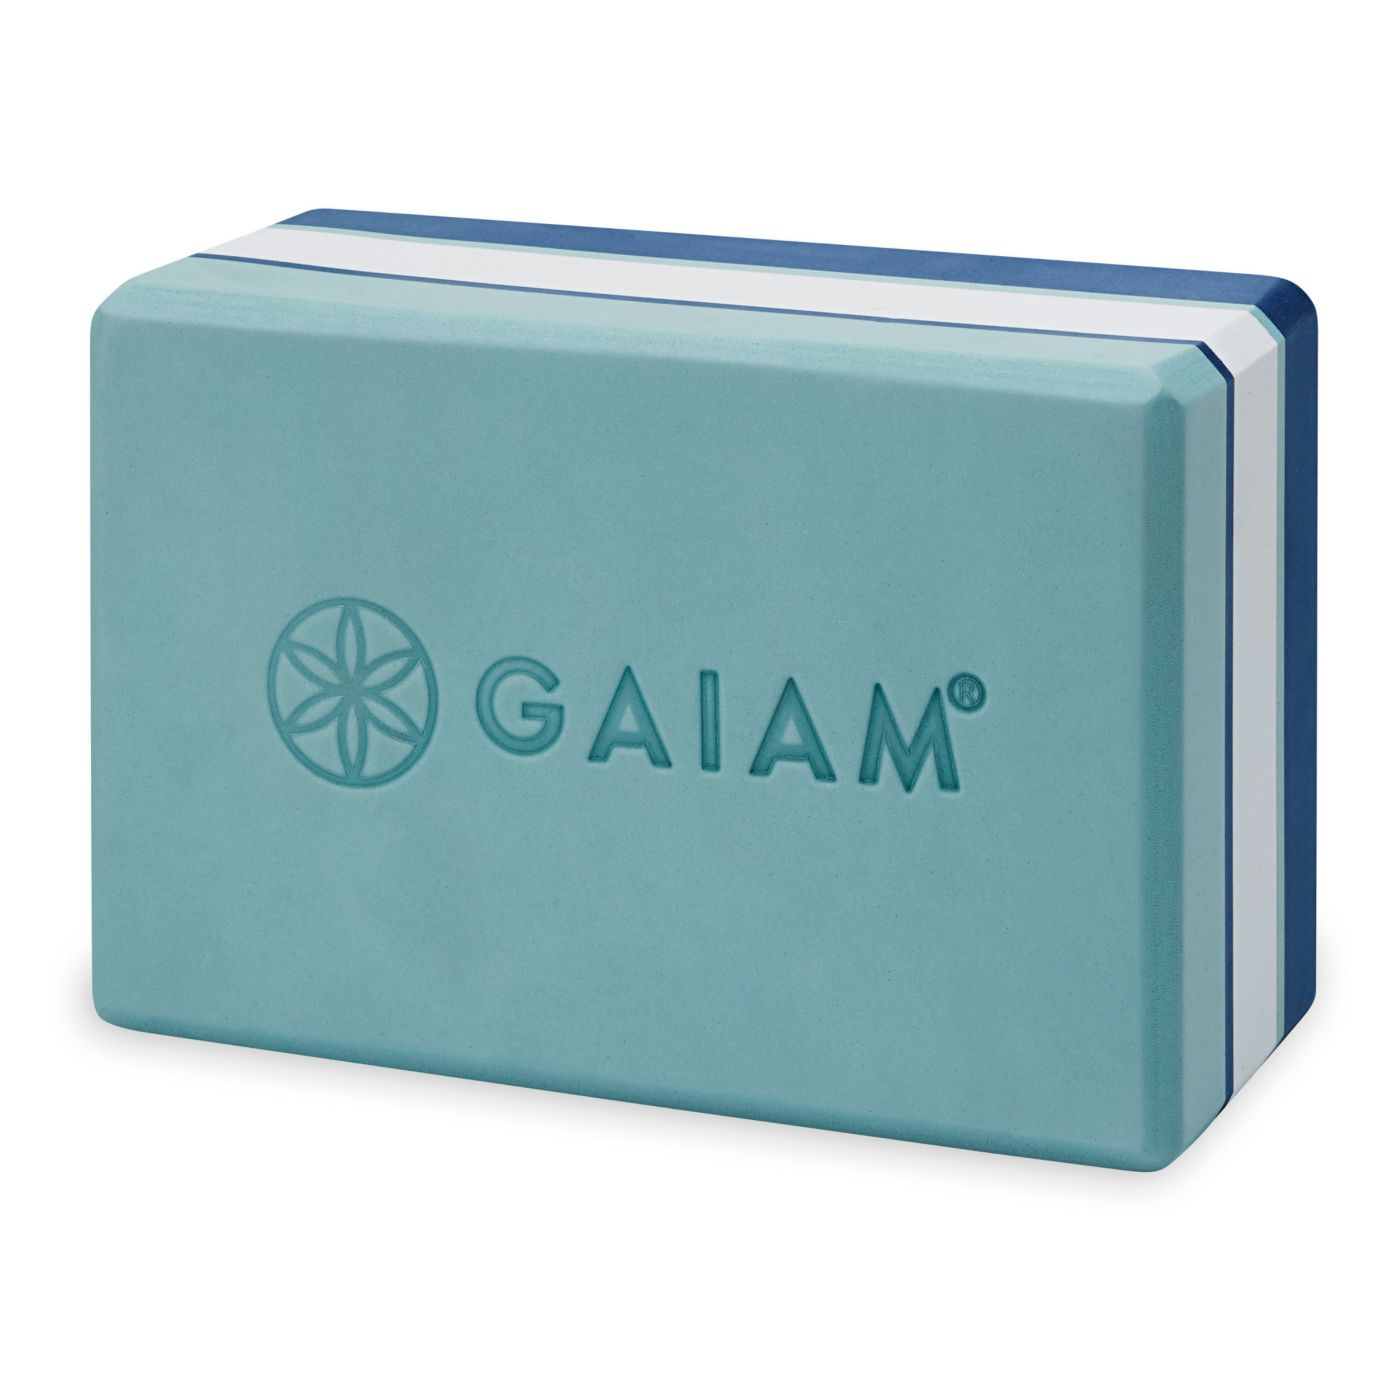 Gaiam Studio Select Premium Yoga Block